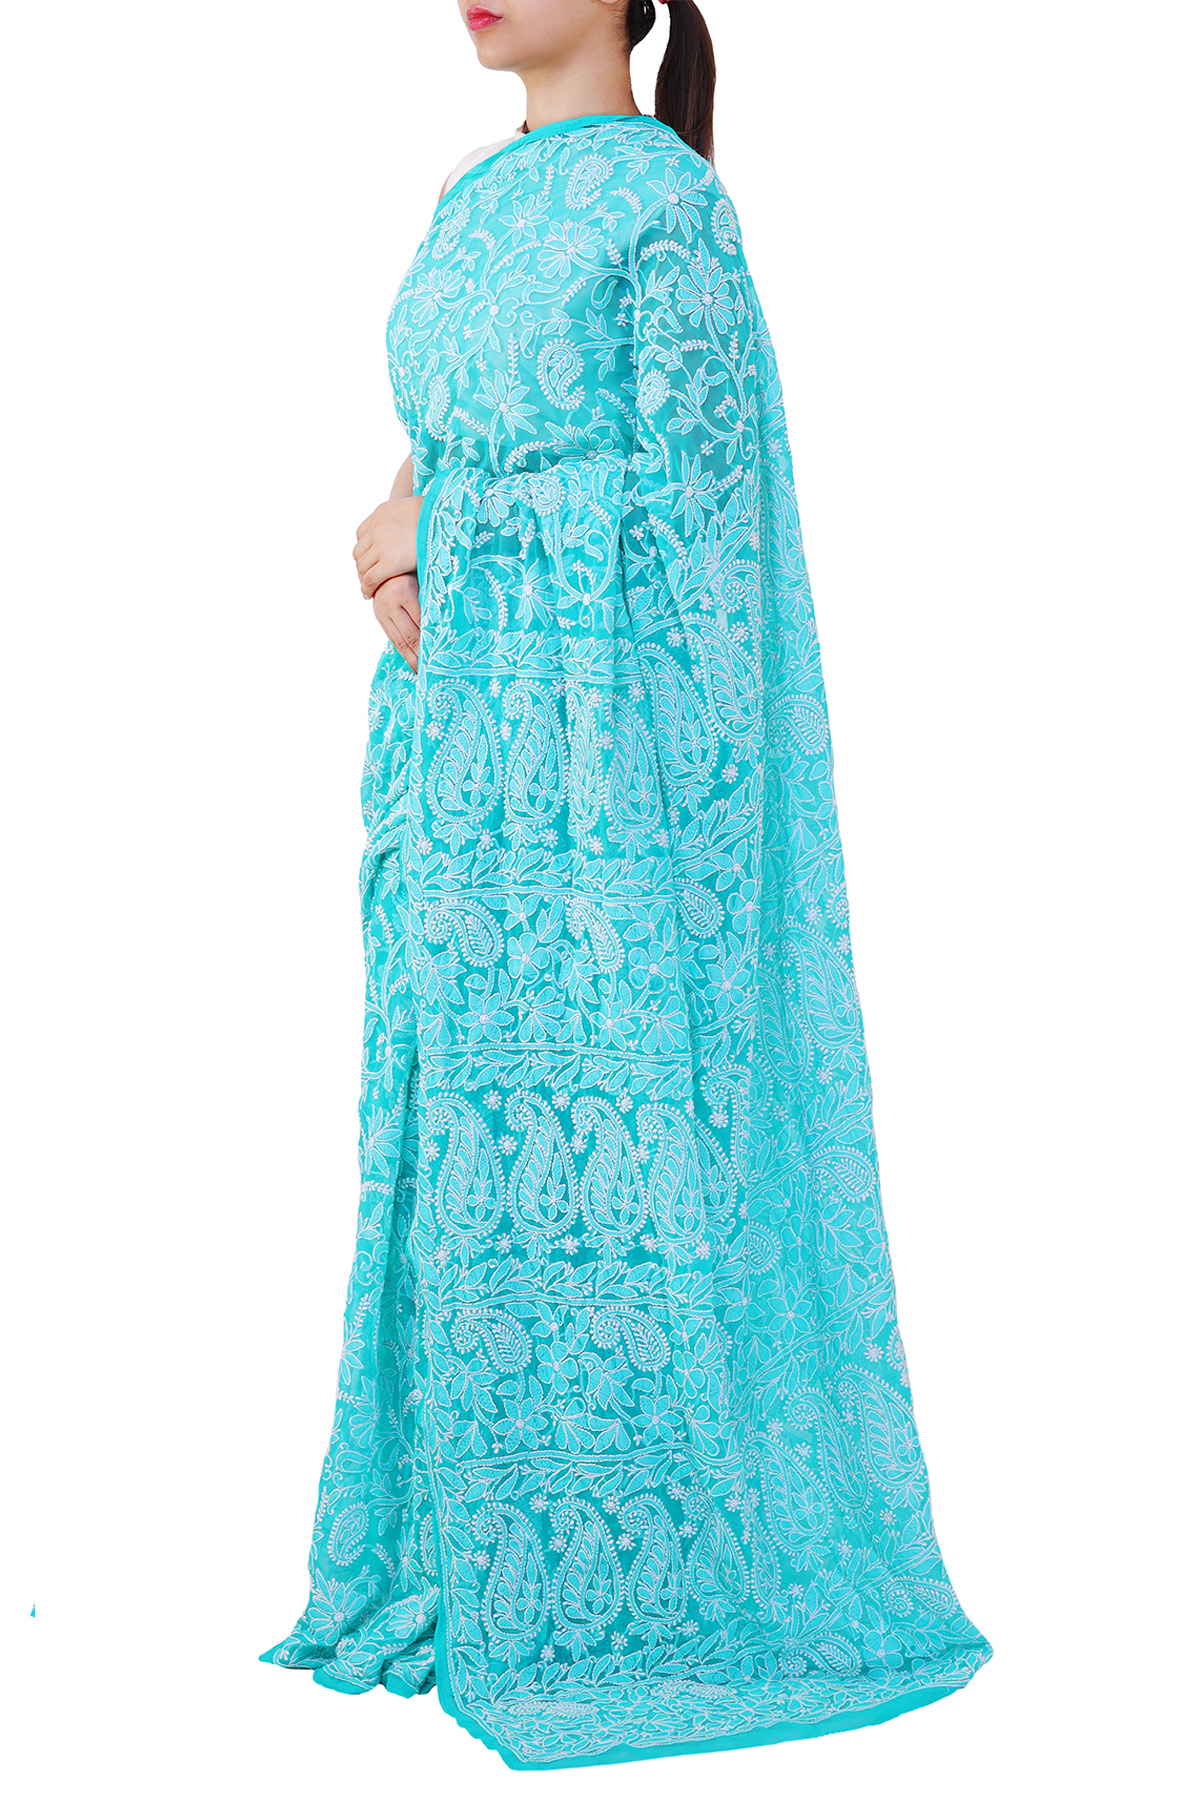 Blue Color Allover Heavy Palla Hand Embroidered Lucknowi Chikankari Saree (With Blouse - Georgette) KC250681